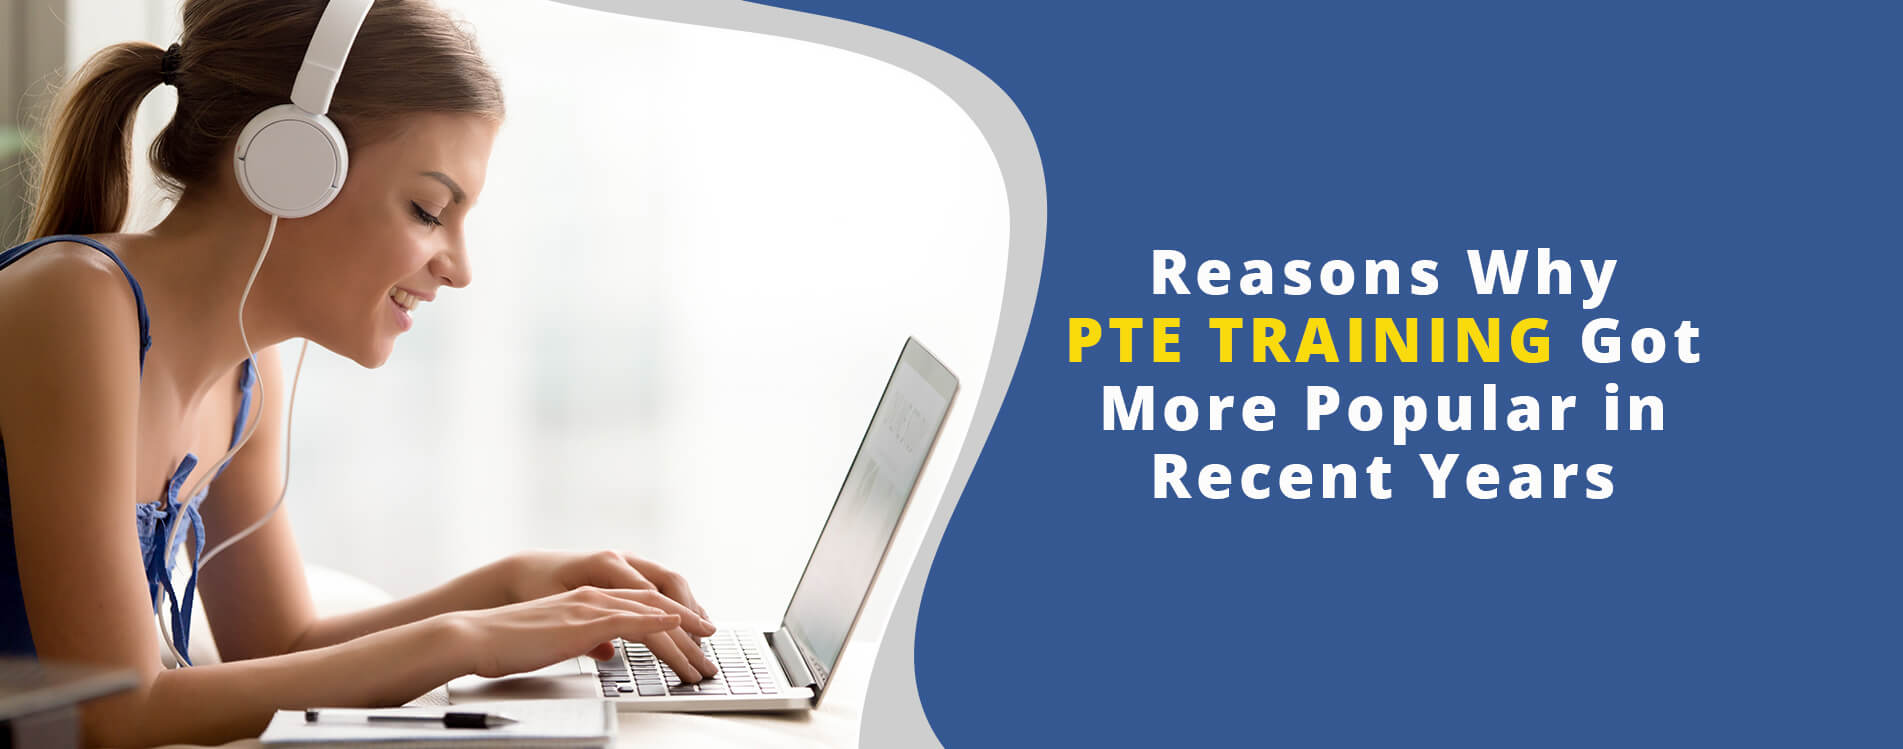 Reasons Why PTE Training Got More Popular in Recent Years